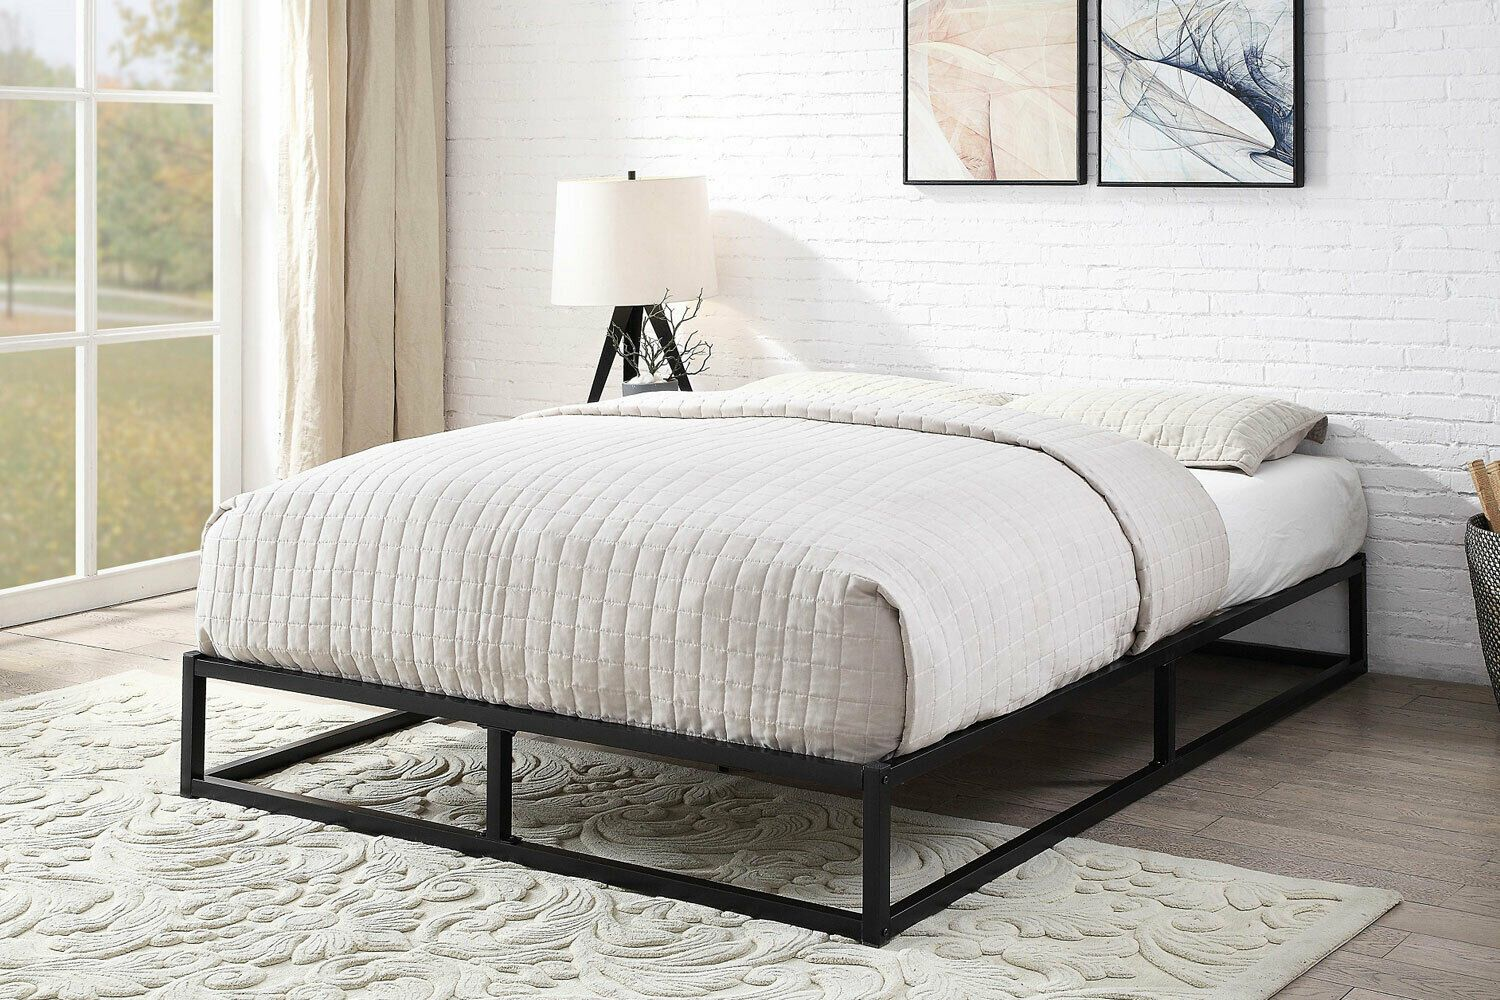 Double Loft Bed Frame in 2020 Loft bed frame, Metal